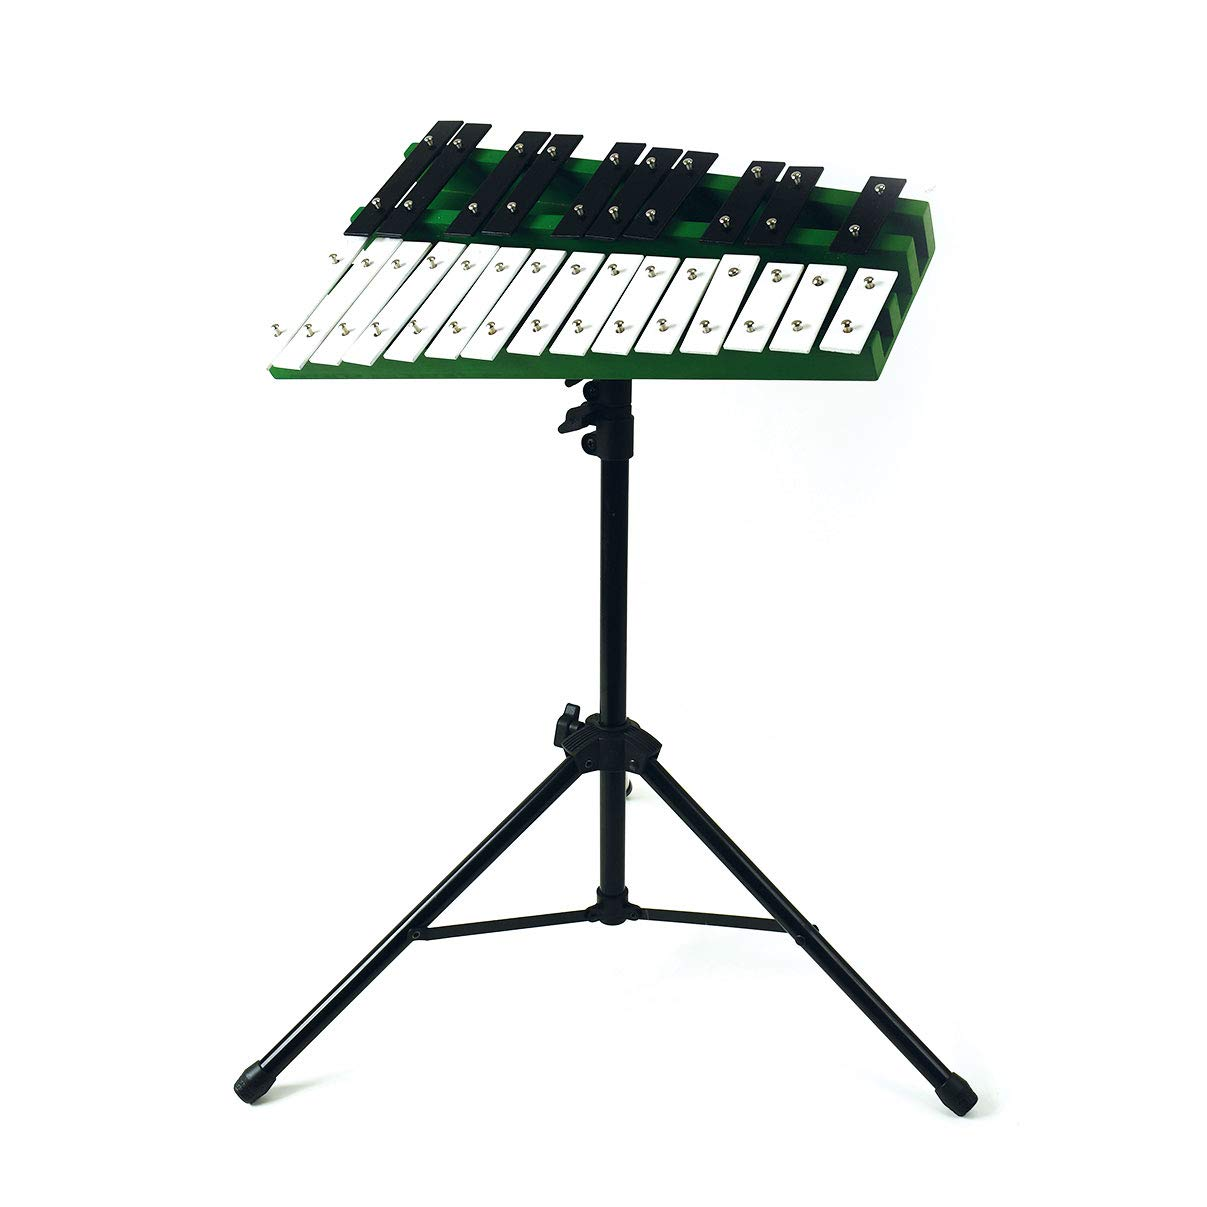 Professional Green Wooden Soprano Glockenspiel Xylophone on Stand with 25 Metal Keys - Includes Xylophone, Stand, Case, Beaters by Cara & Co